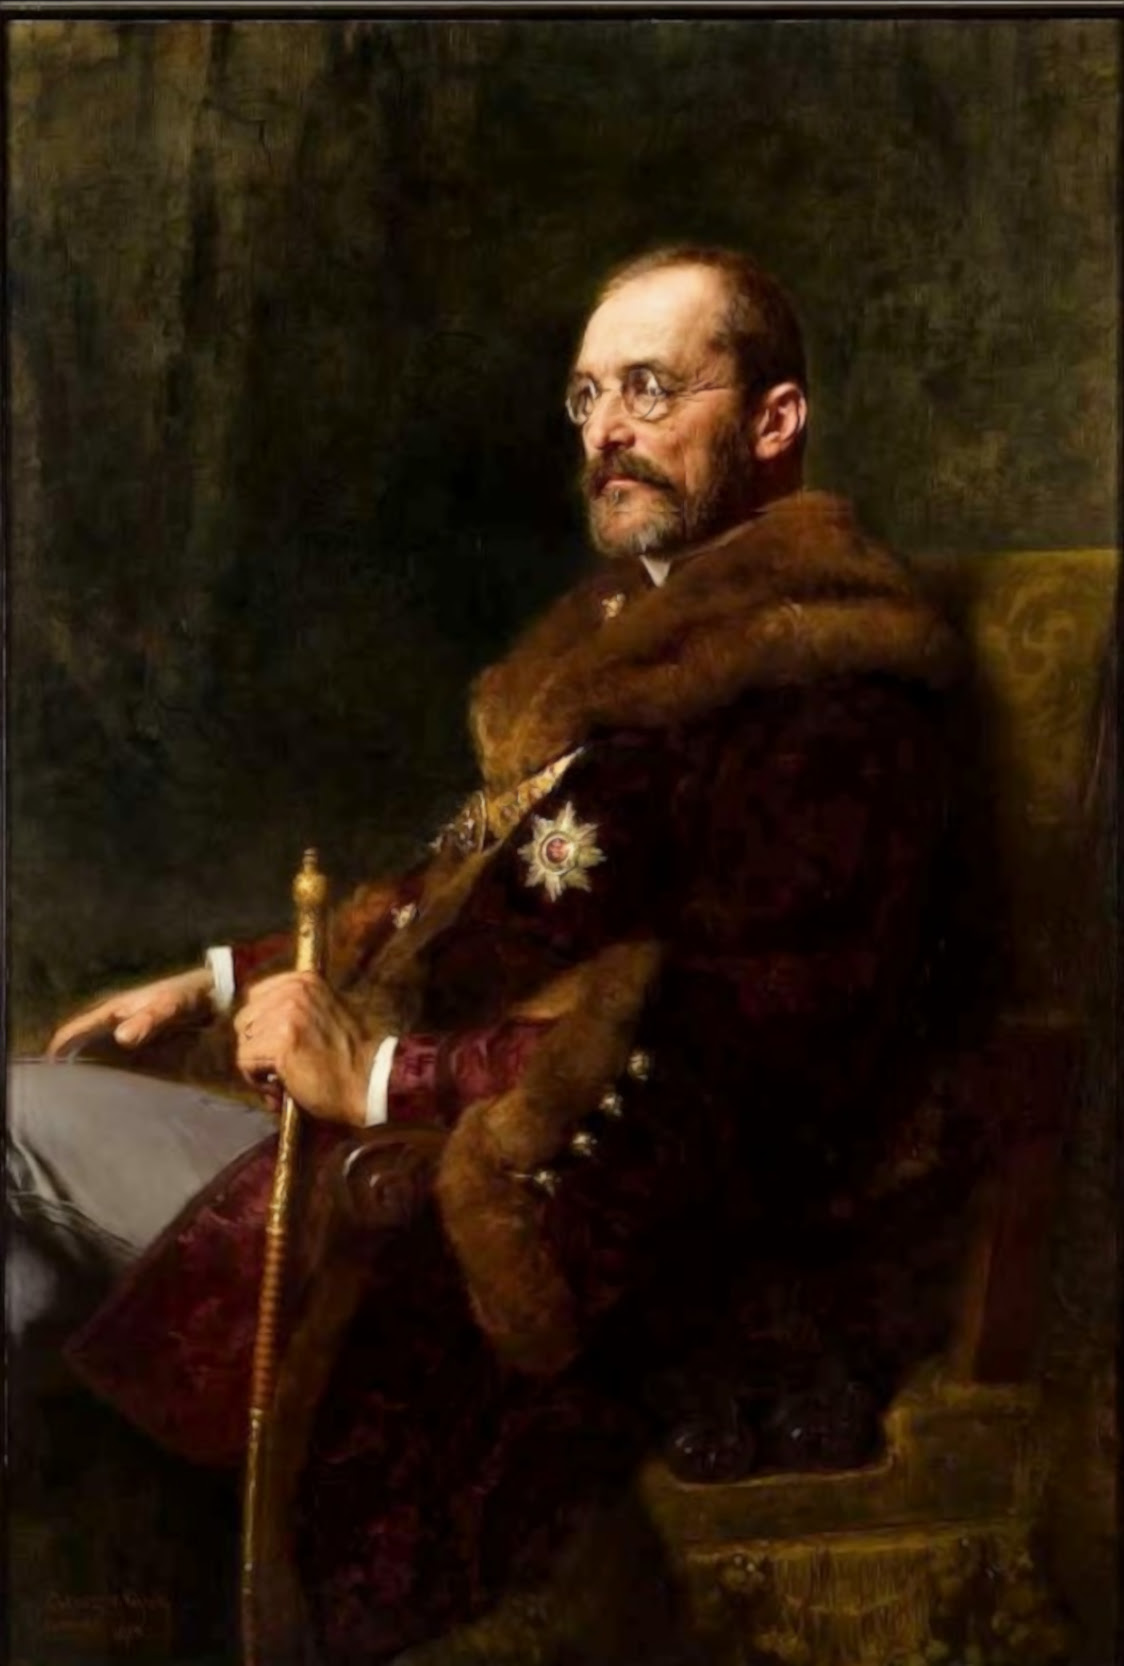 István Tisza, Prime Minister of the Kingdom of Hungary